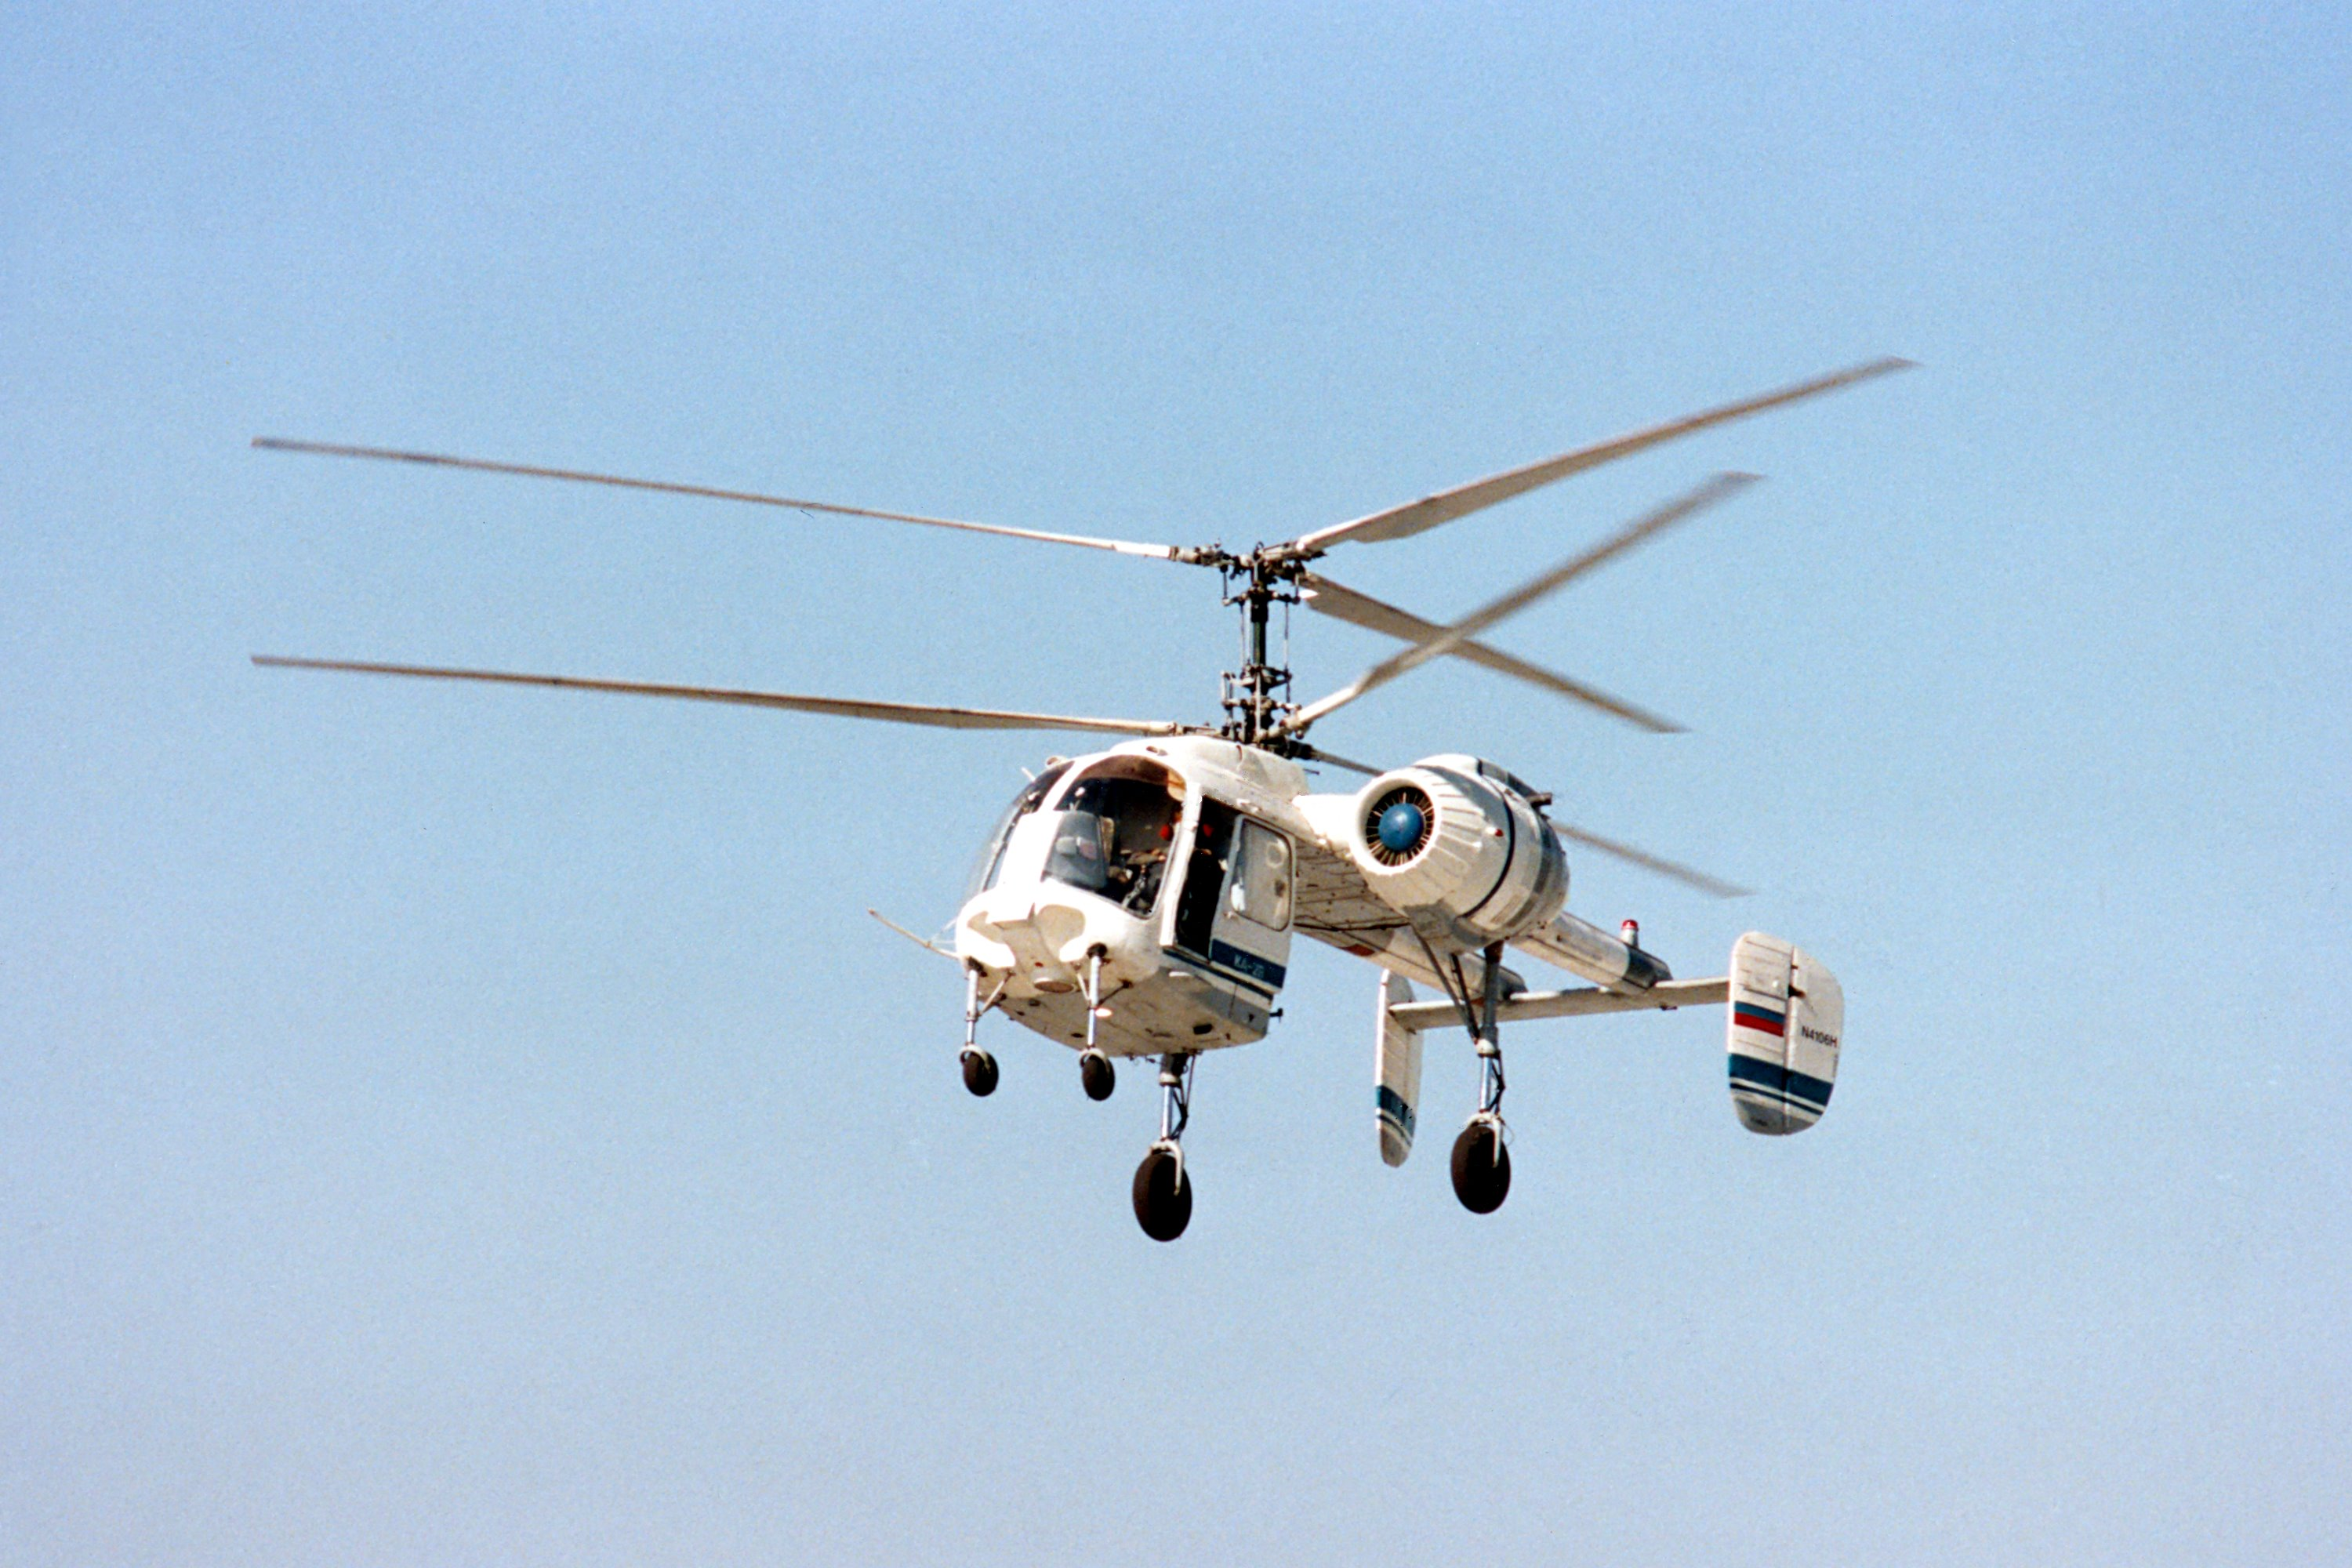 sky helicopter with Kamov Ka 26 on 011723 further Kamov KA 26 additionally 109007 in addition Open photo likewise serenityhelicopters.